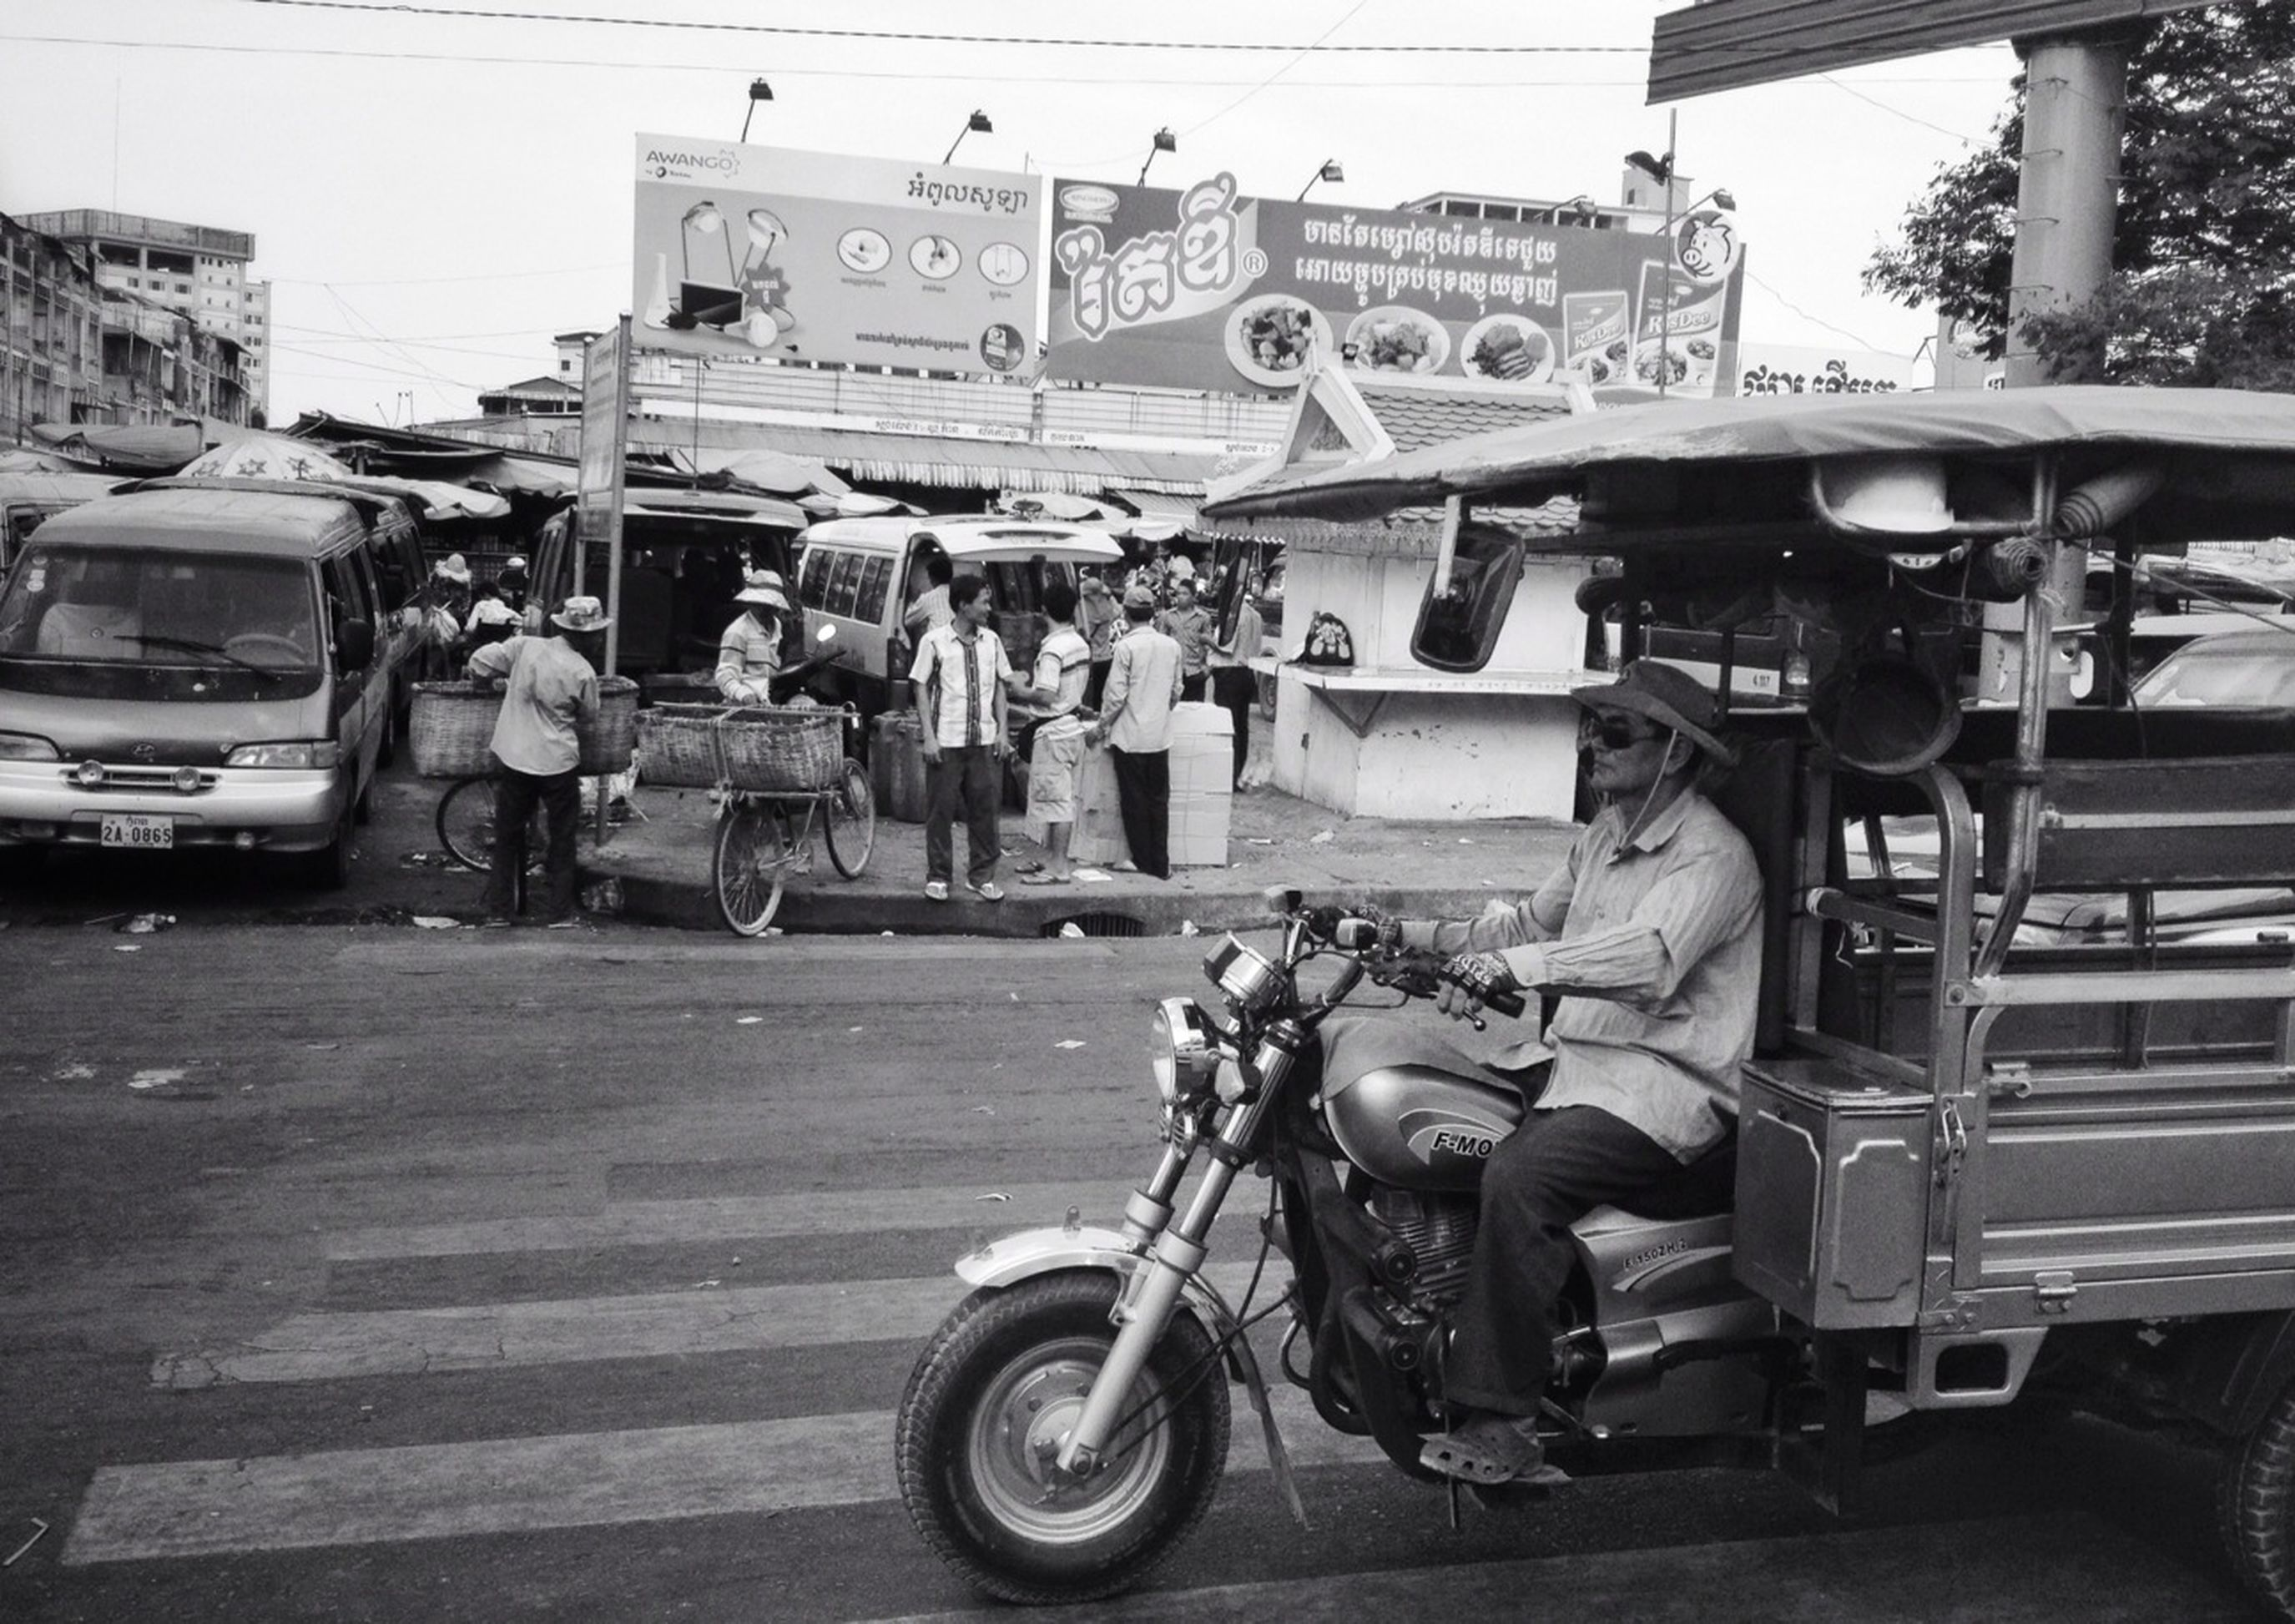 The streets of Phnom Penh, #Cambodia